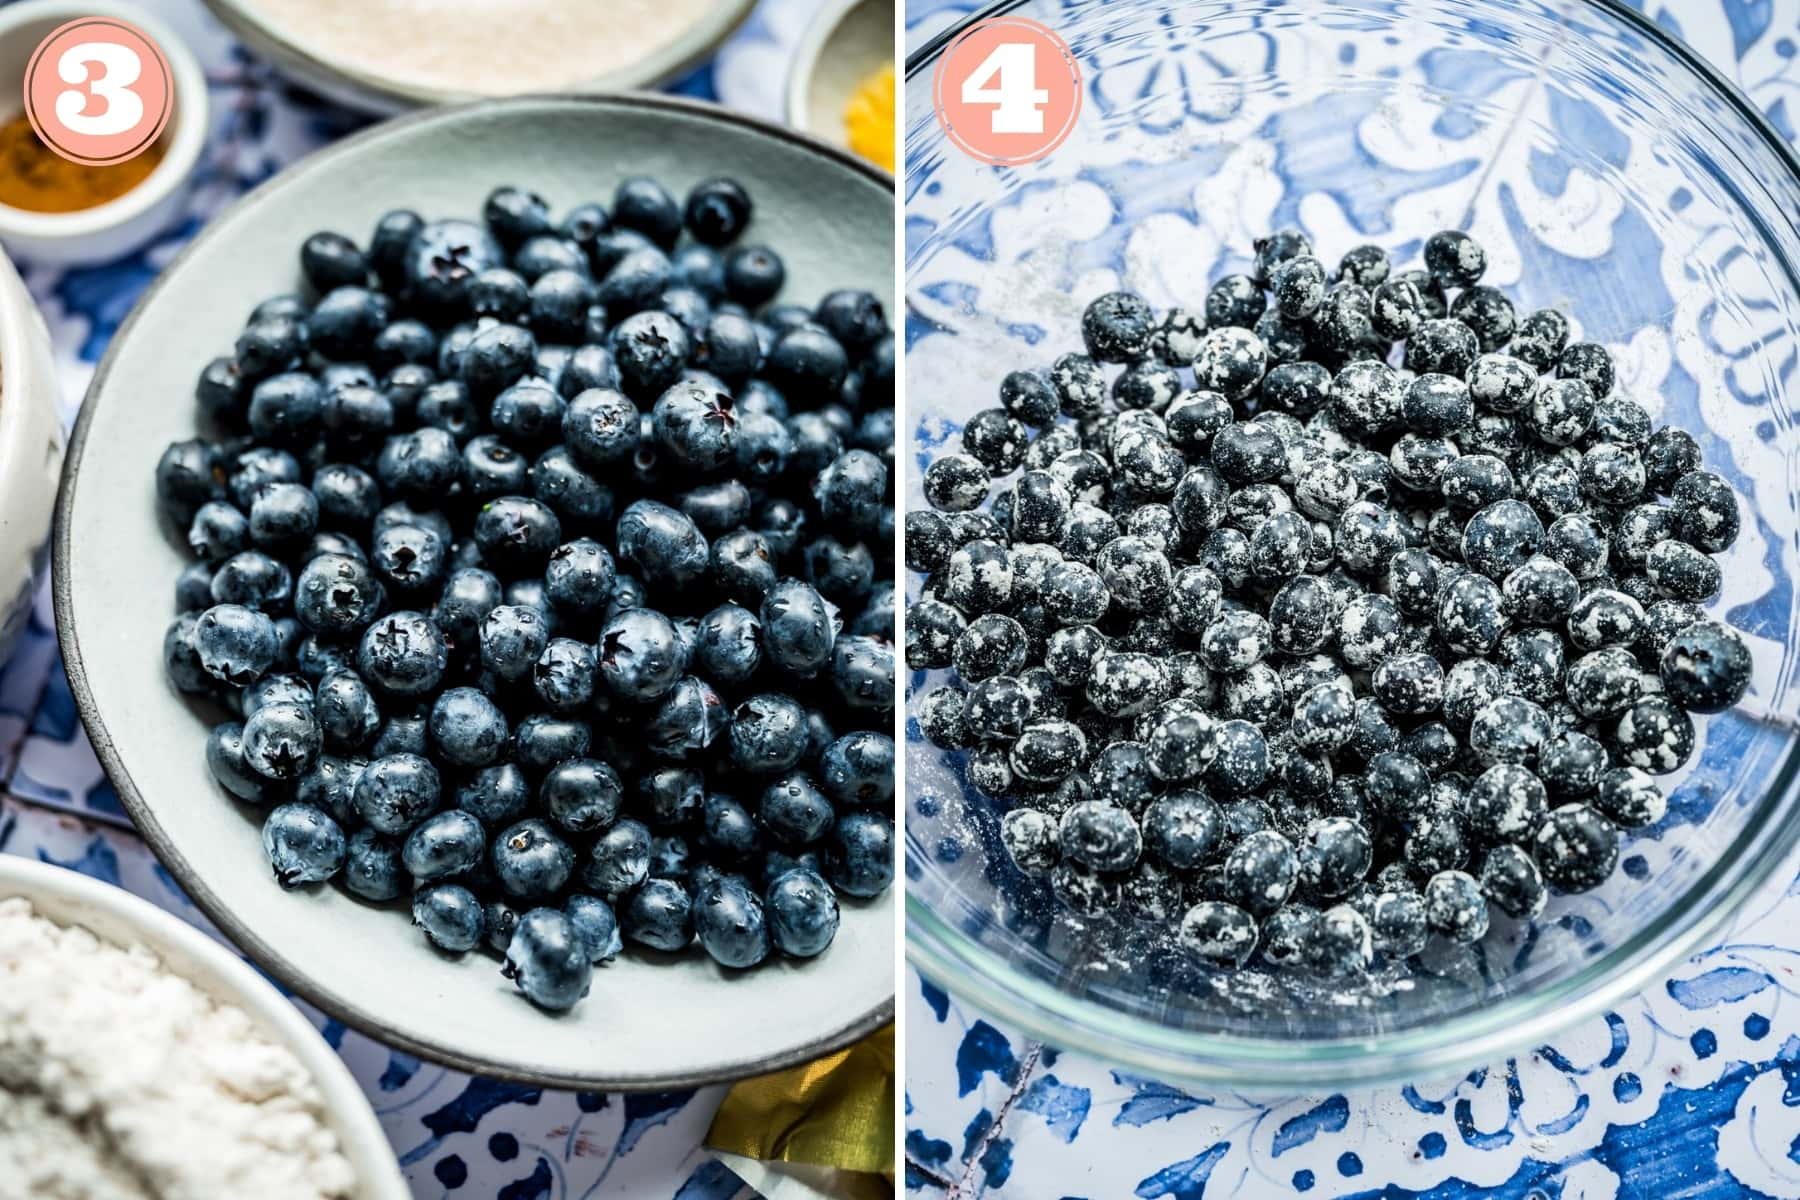 before and after coating fresh blueberries in flour in a mixing bowl.